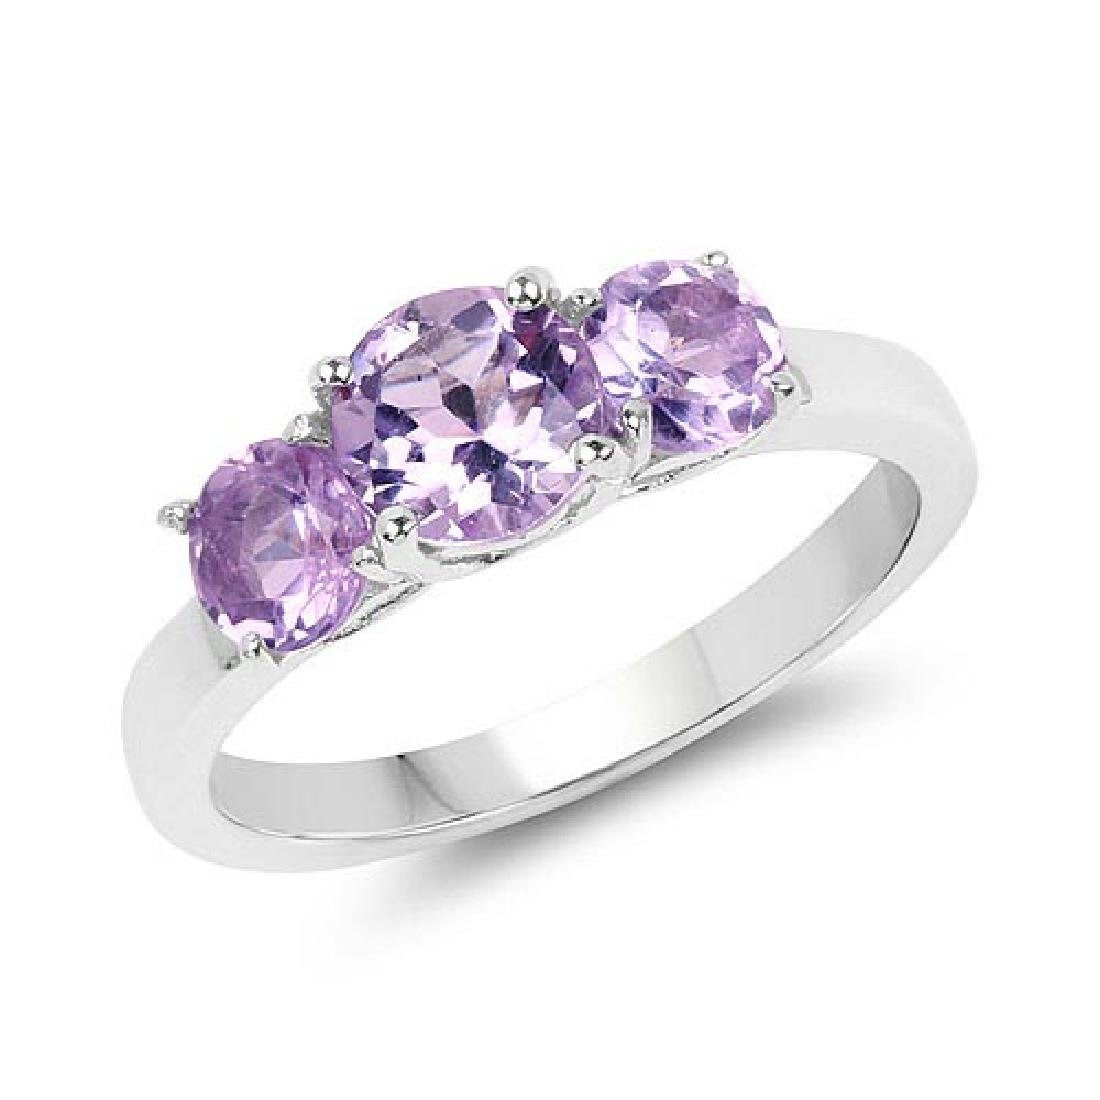 1.63 Carat Genuine Amethyst .925 Sterling Silver Ring